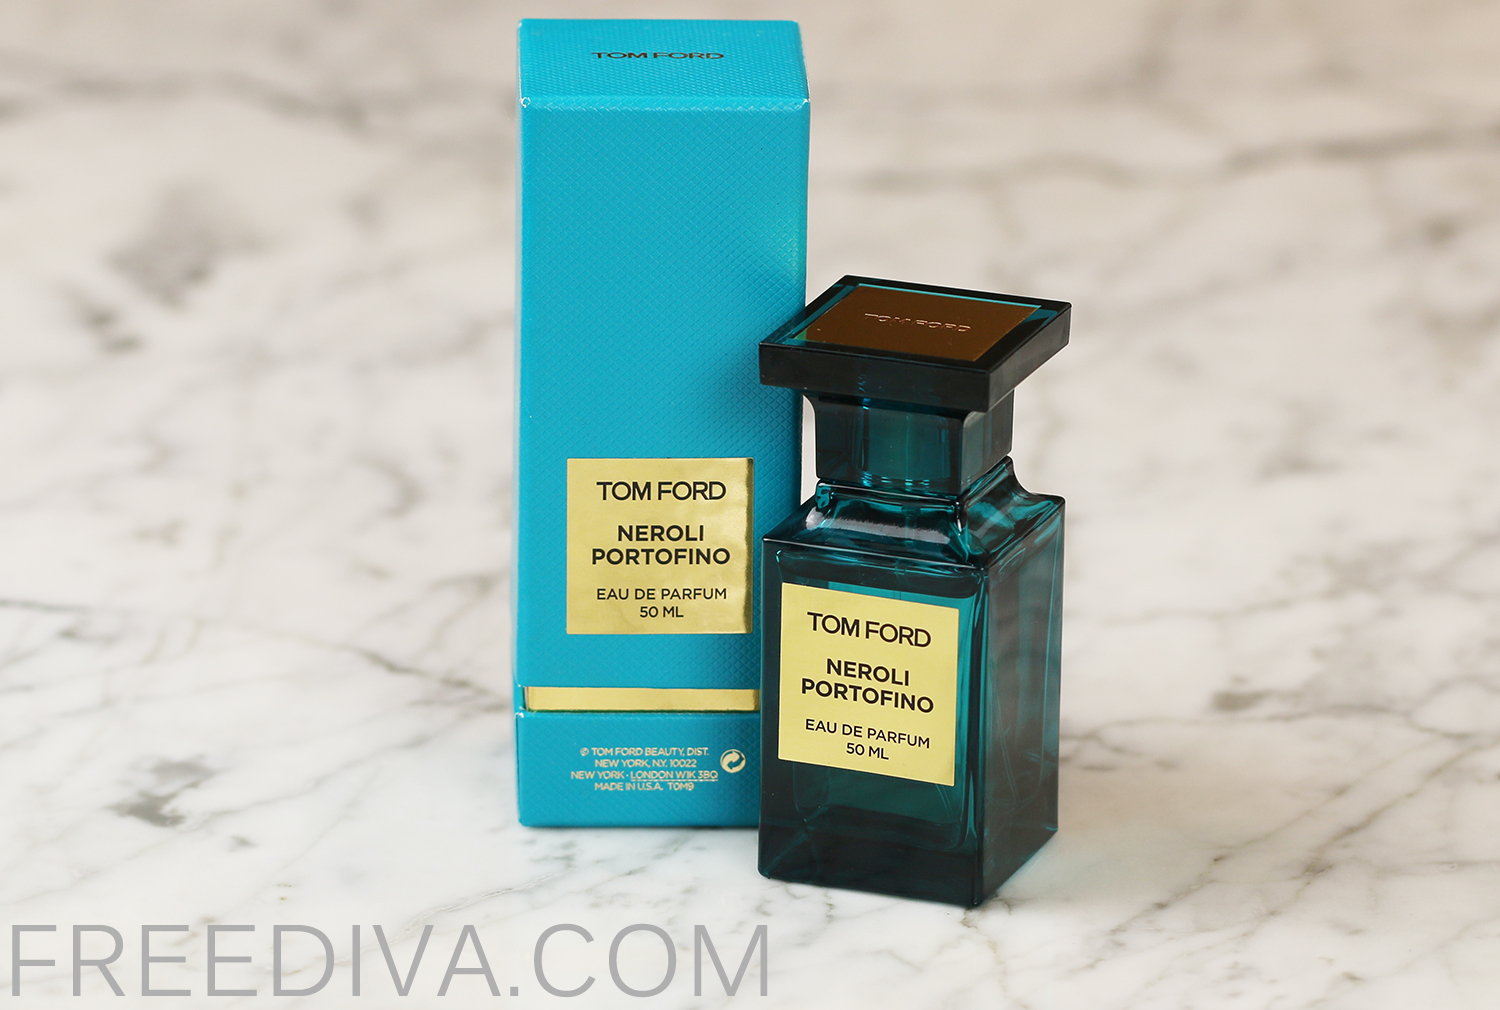 tom ford neroli portofino edp eau de parfum free diva. Black Bedroom Furniture Sets. Home Design Ideas